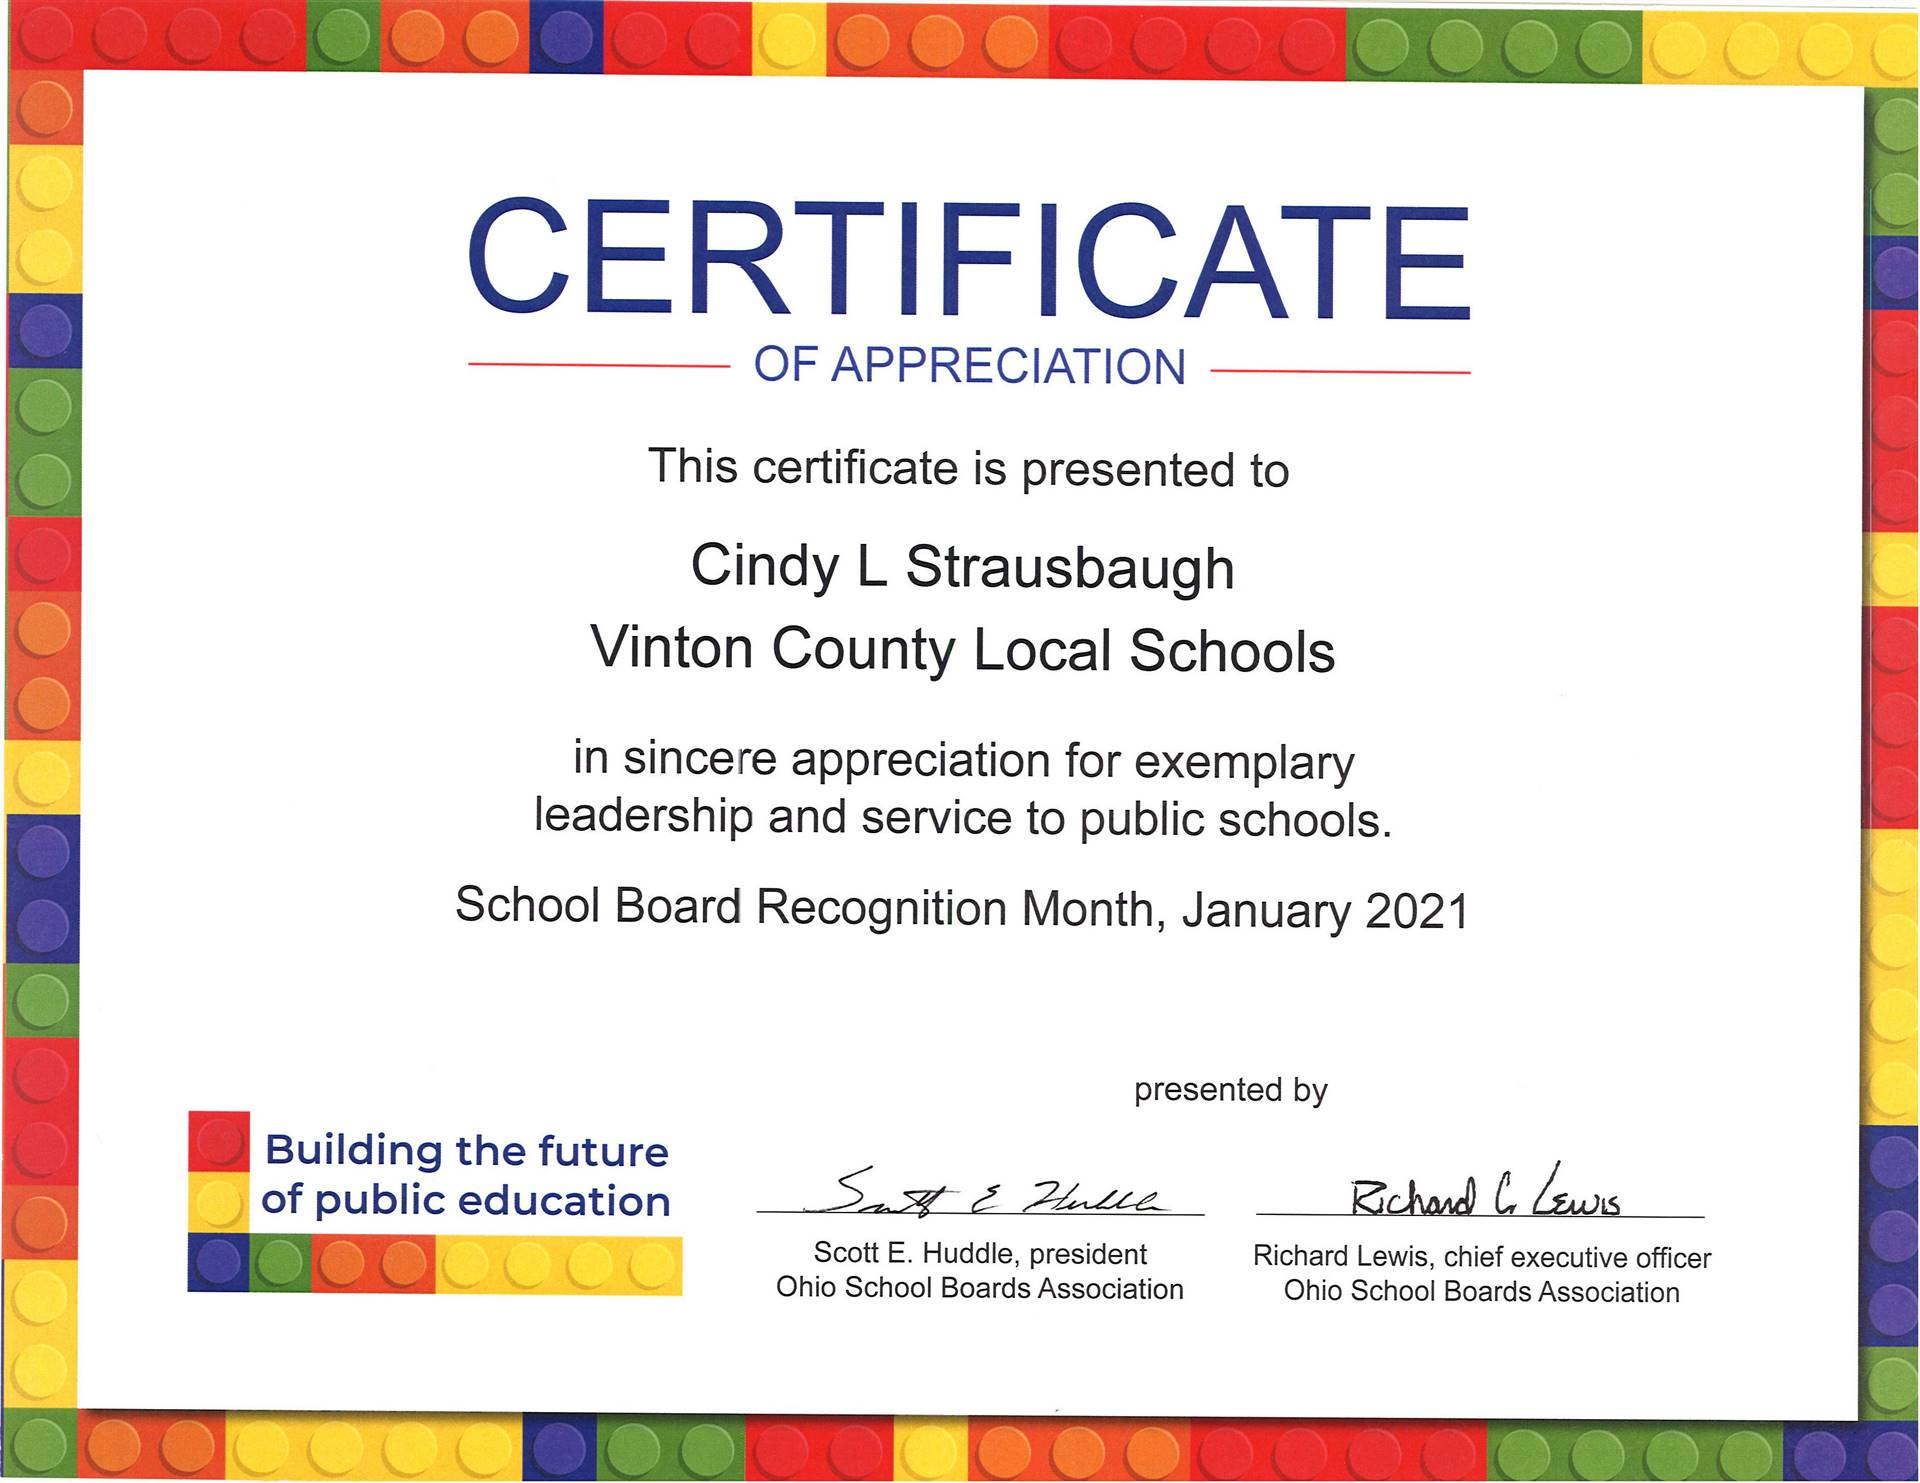 Certificate of Appreciation for Cindy Strausbaugh